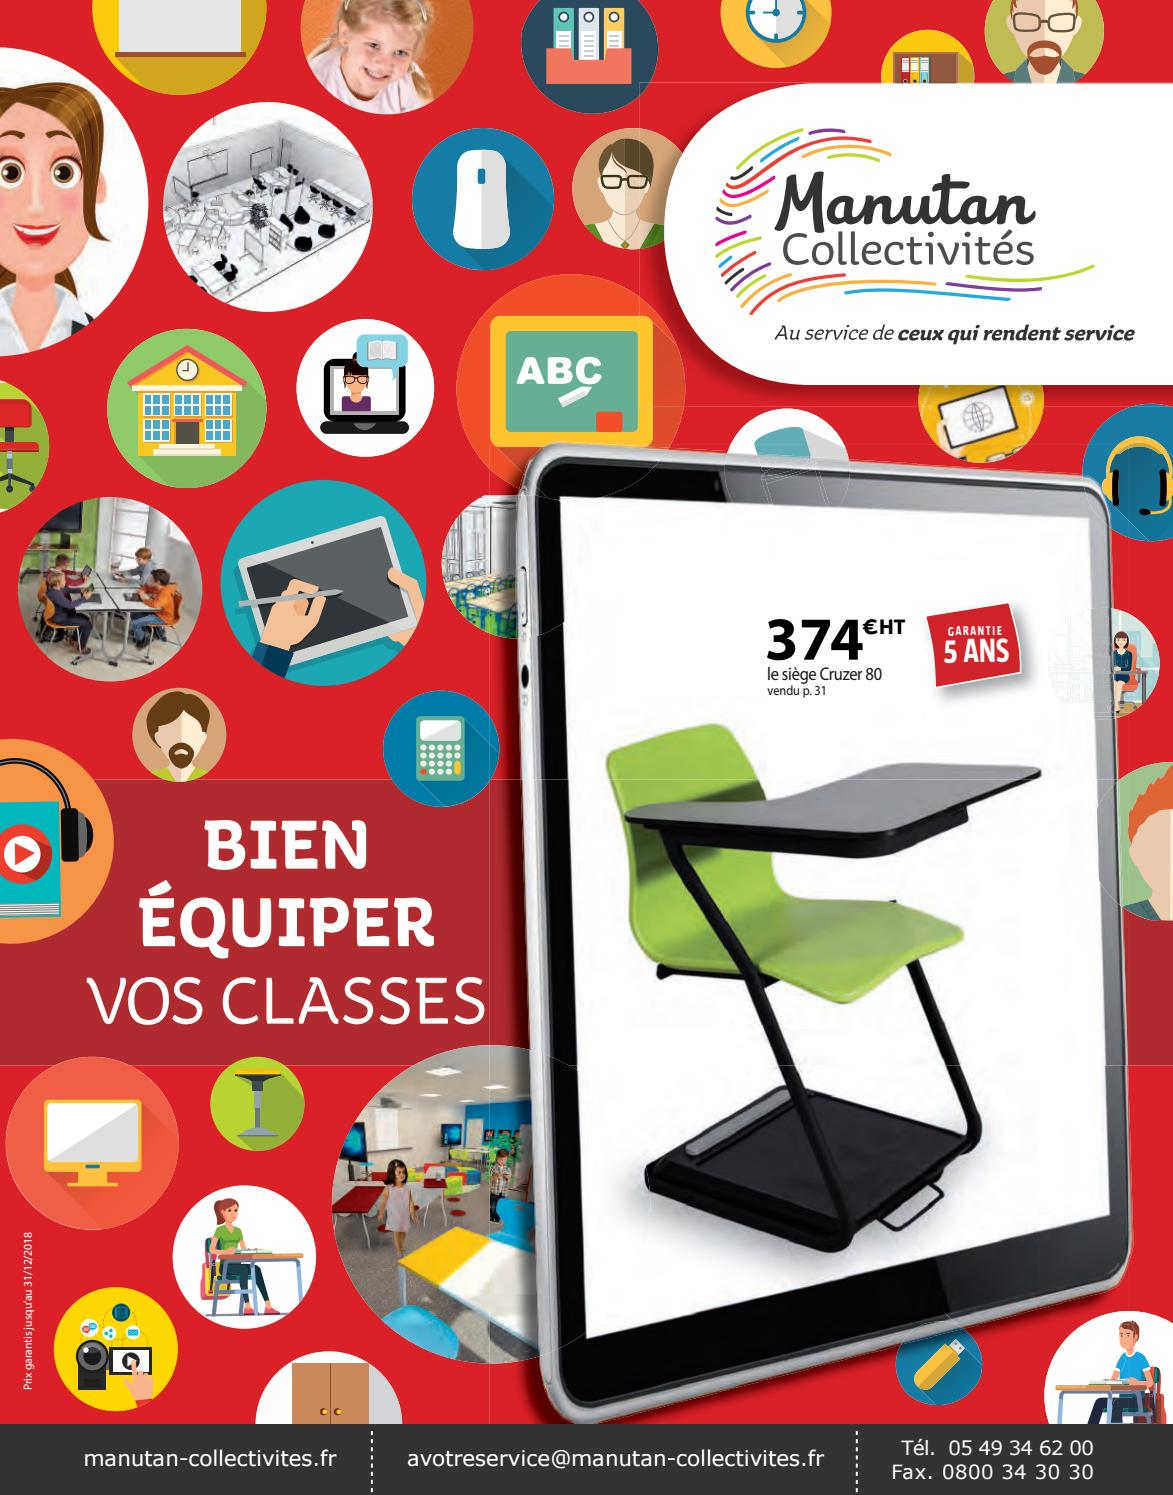 Table Ronde Modulable Charmant Bien Equiper Vos Ecoles Avril 2018 by Manutan Collectivités Of 30 Inspirant Table Ronde Modulable